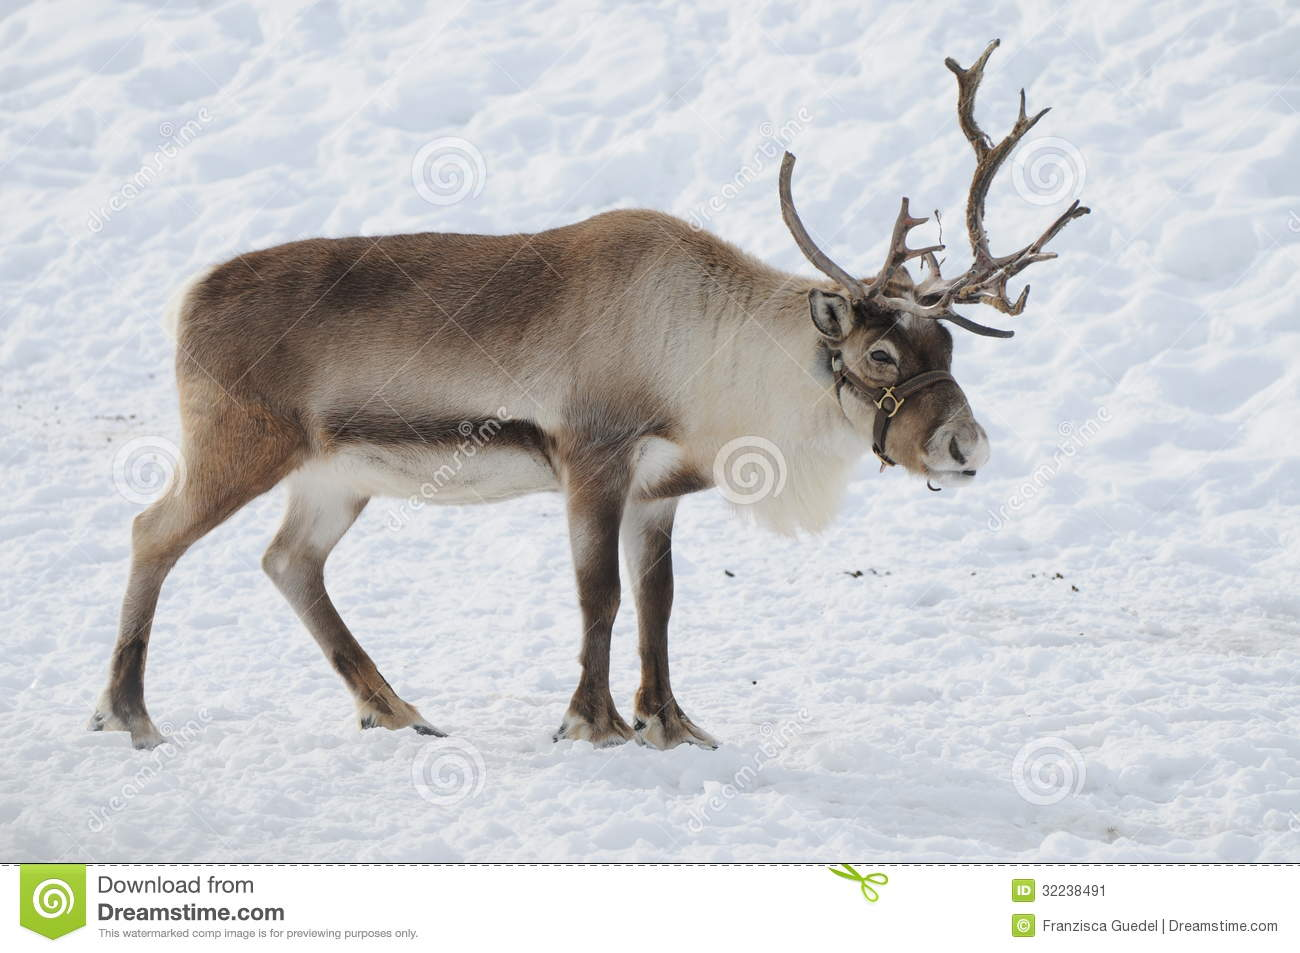 Beautiful reindeer found in the alps during Christmas time.